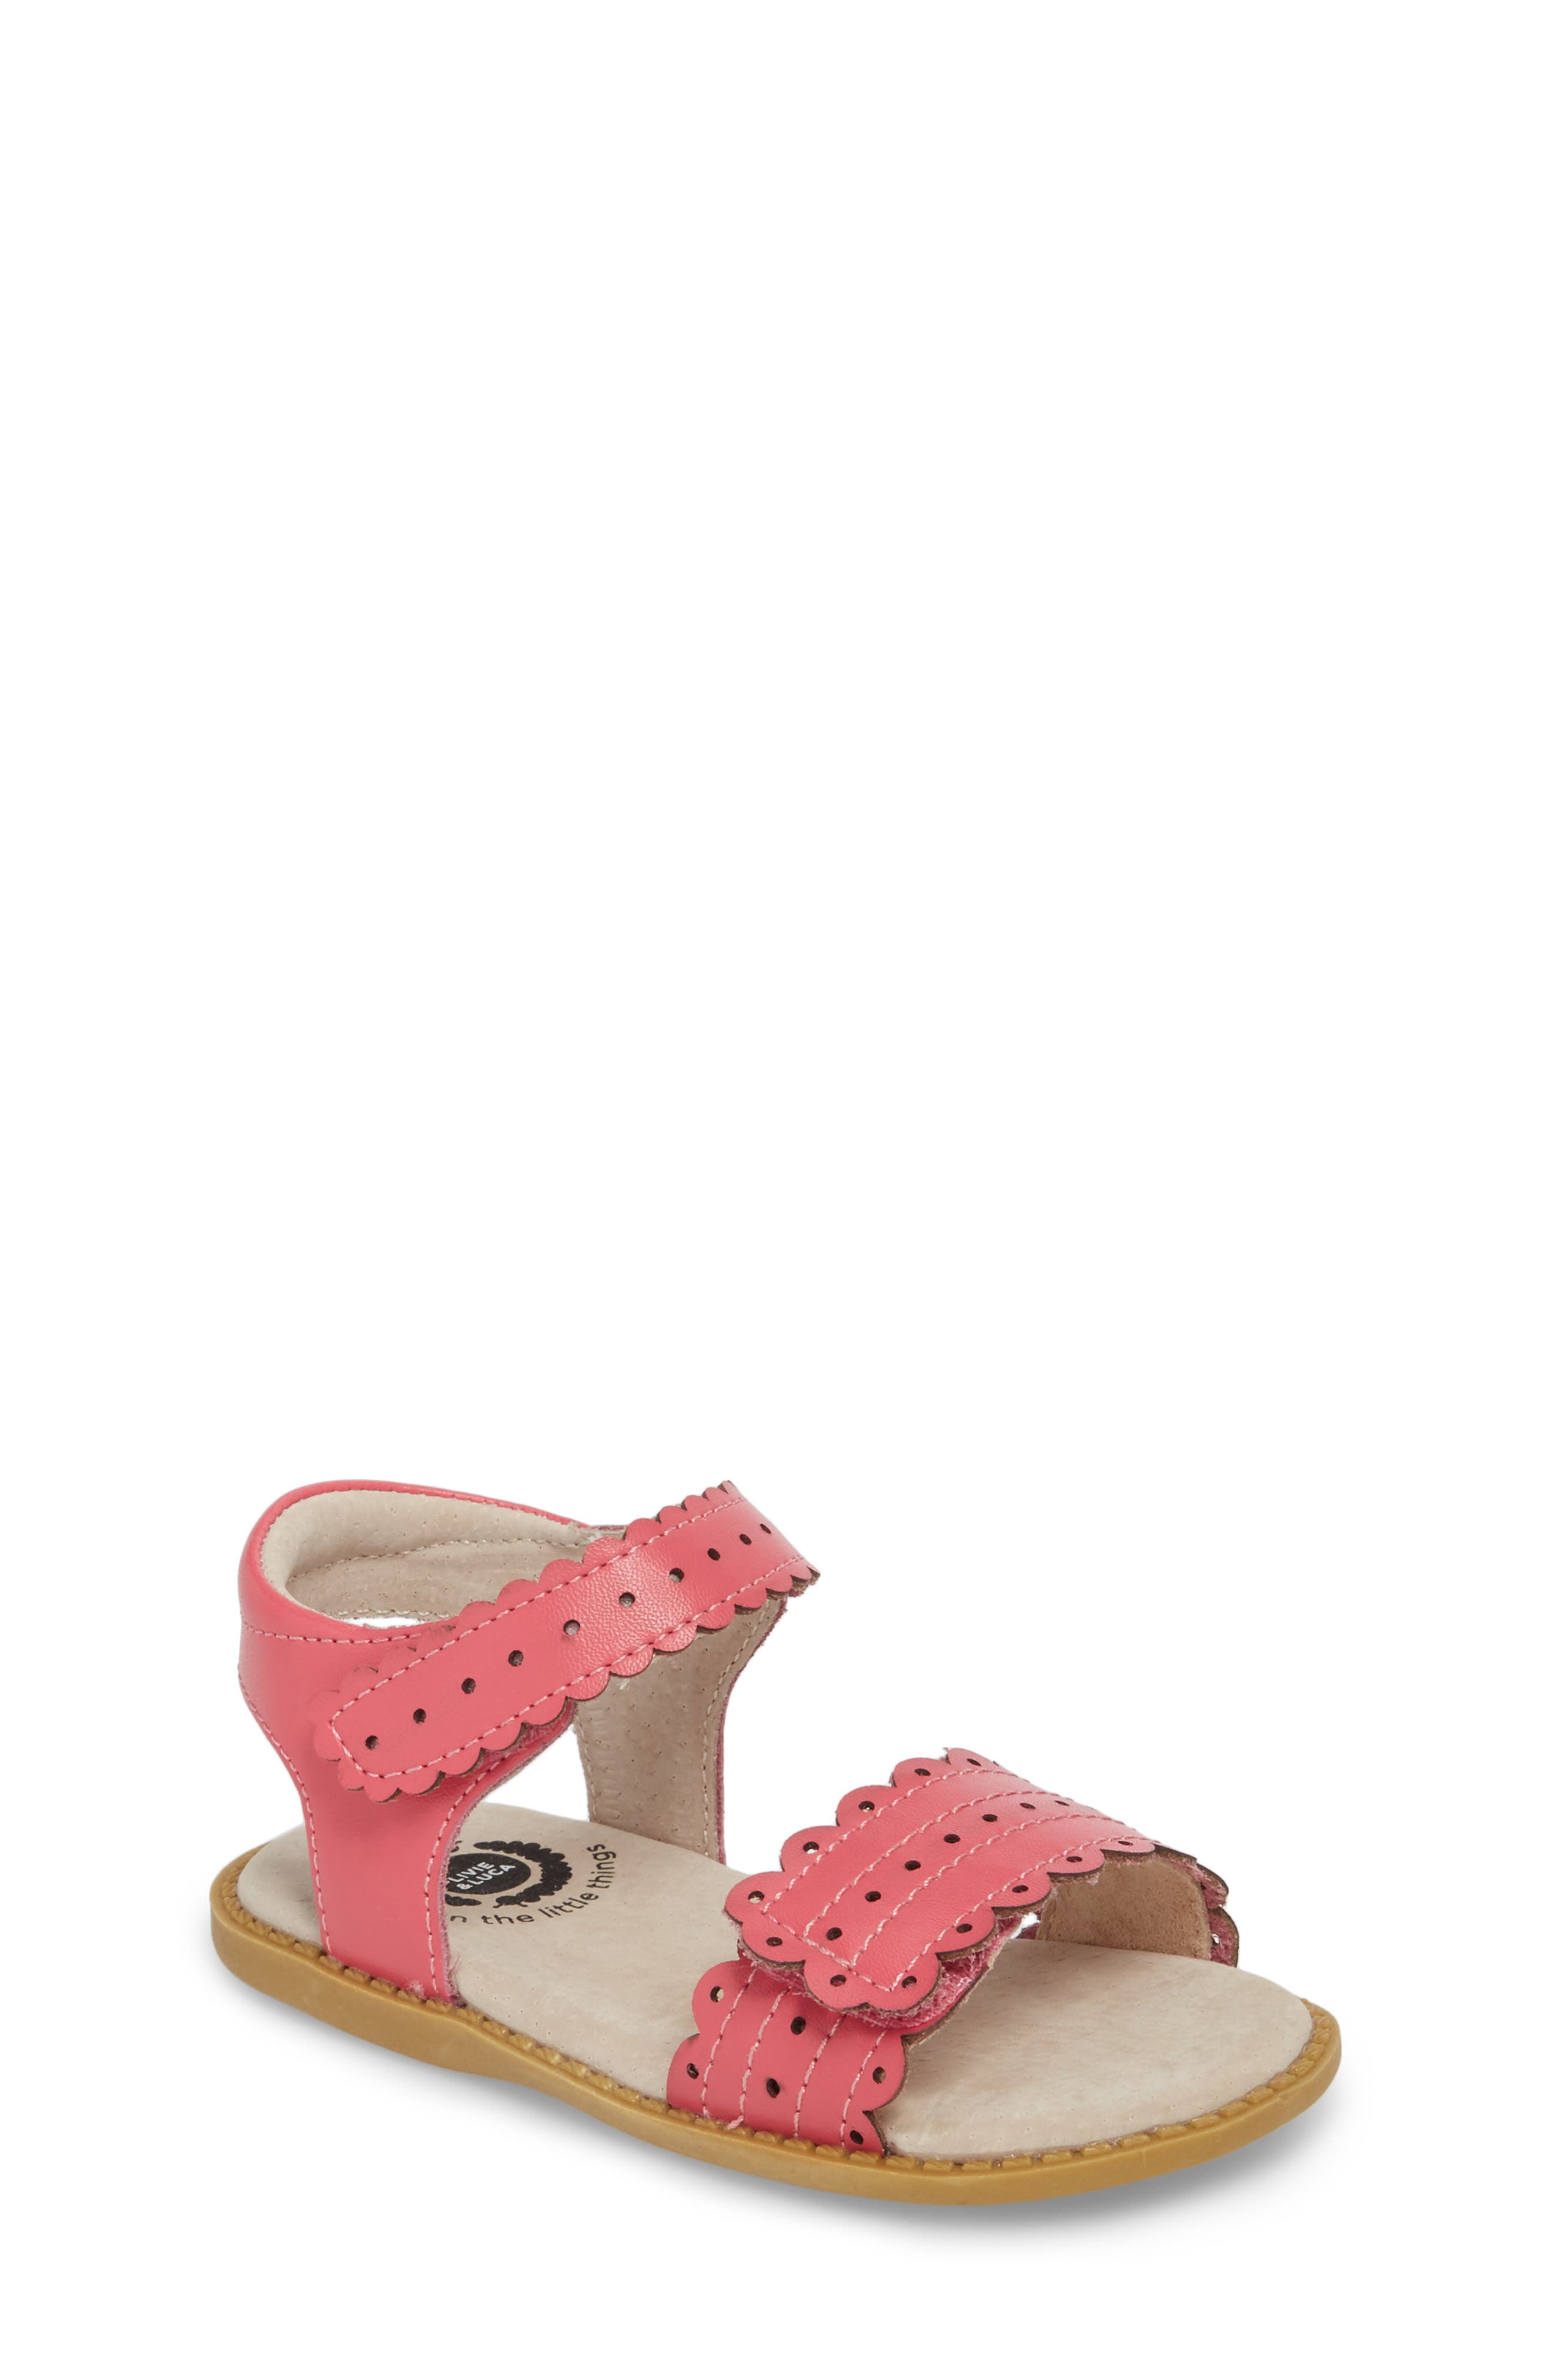 Posey Sandal,                             Main thumbnail 1, color,                             ROSY PINK